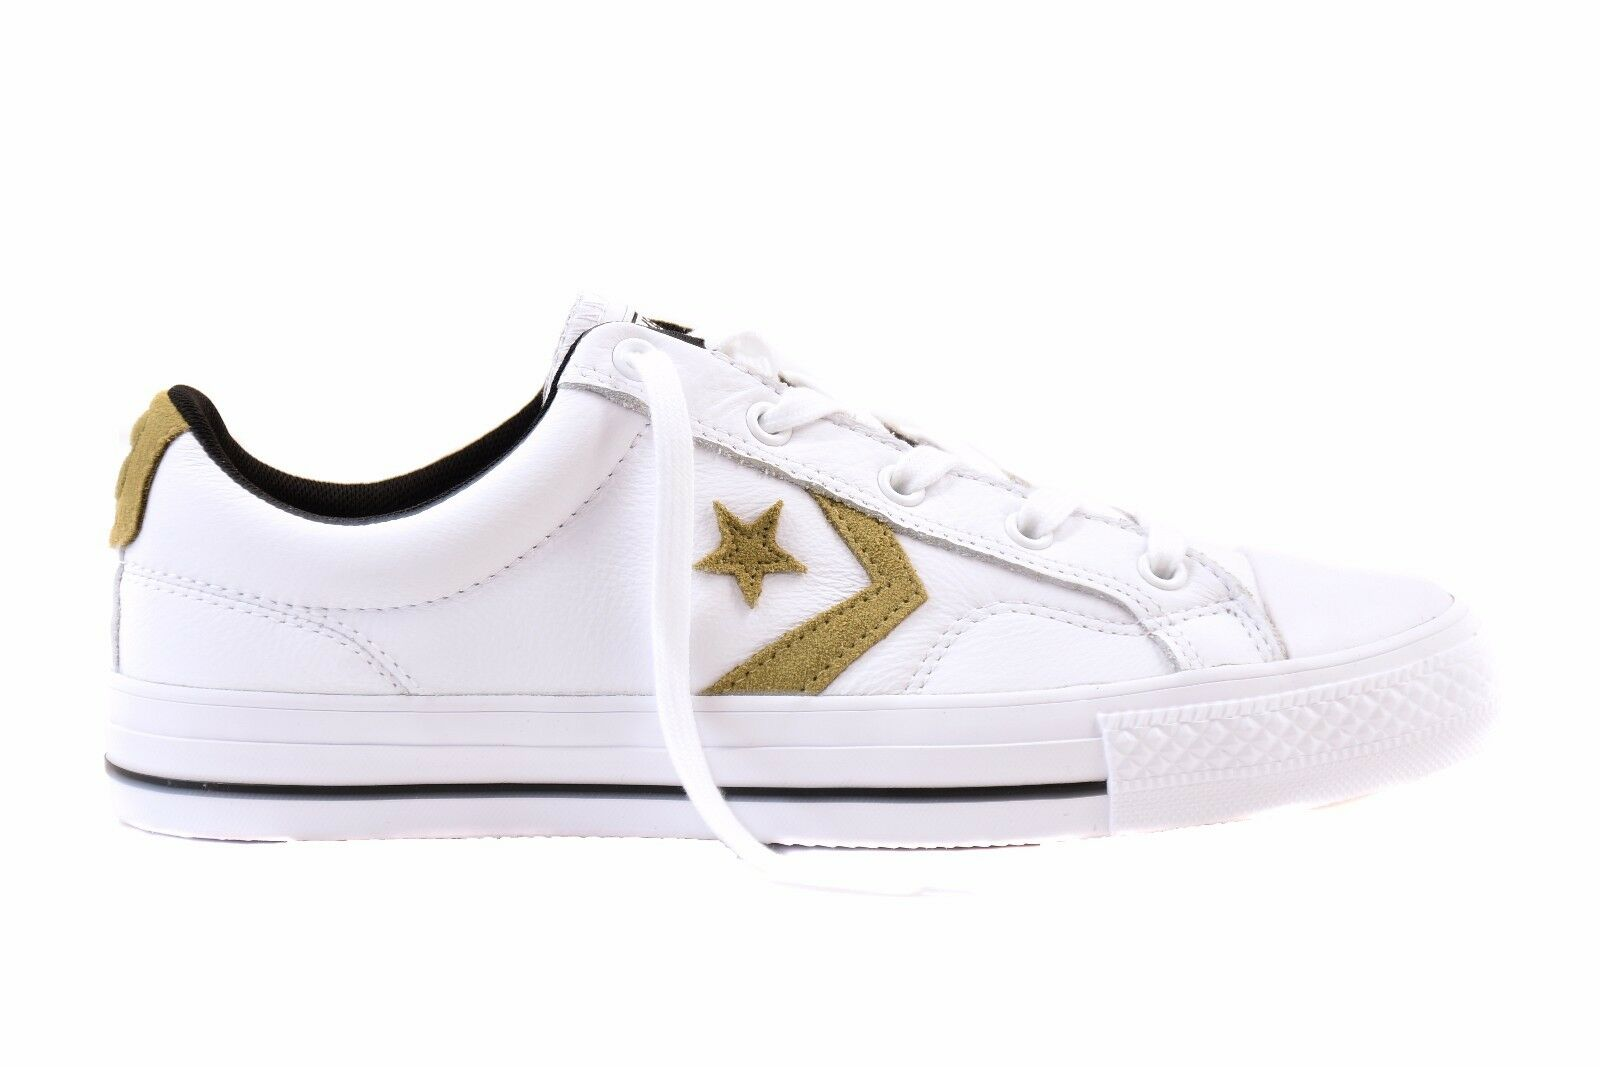 Converse Unisex Star Player Leather OX 153763C Sneakers White RRP £110 BCF78